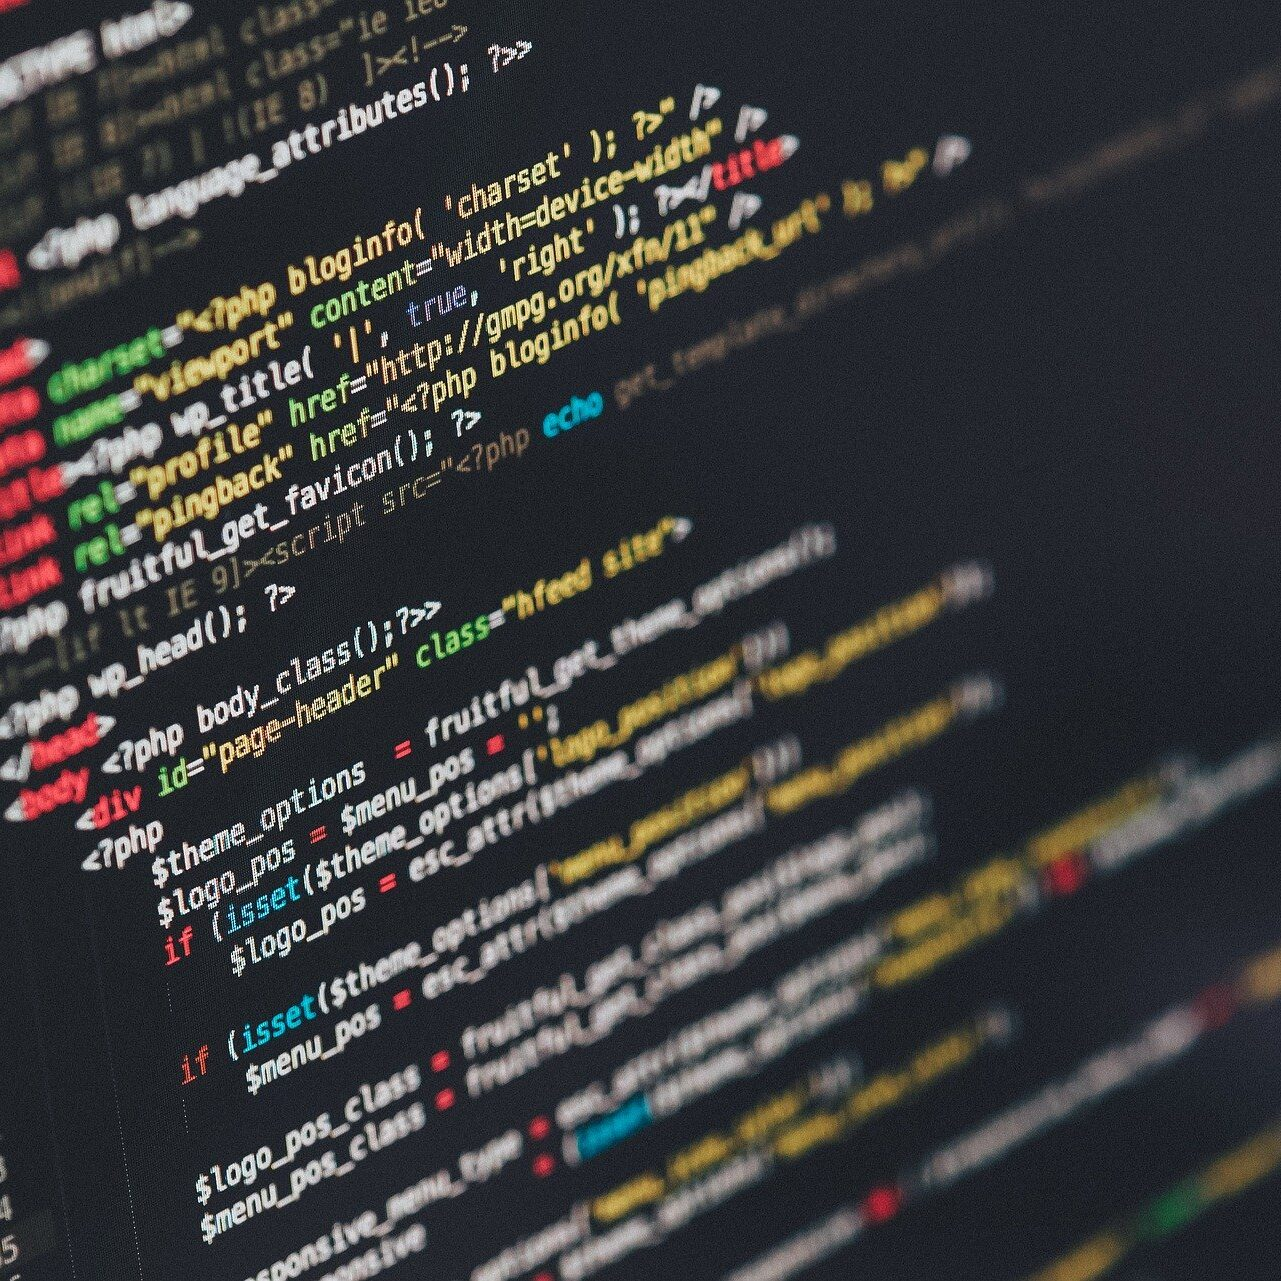 Coding and testing